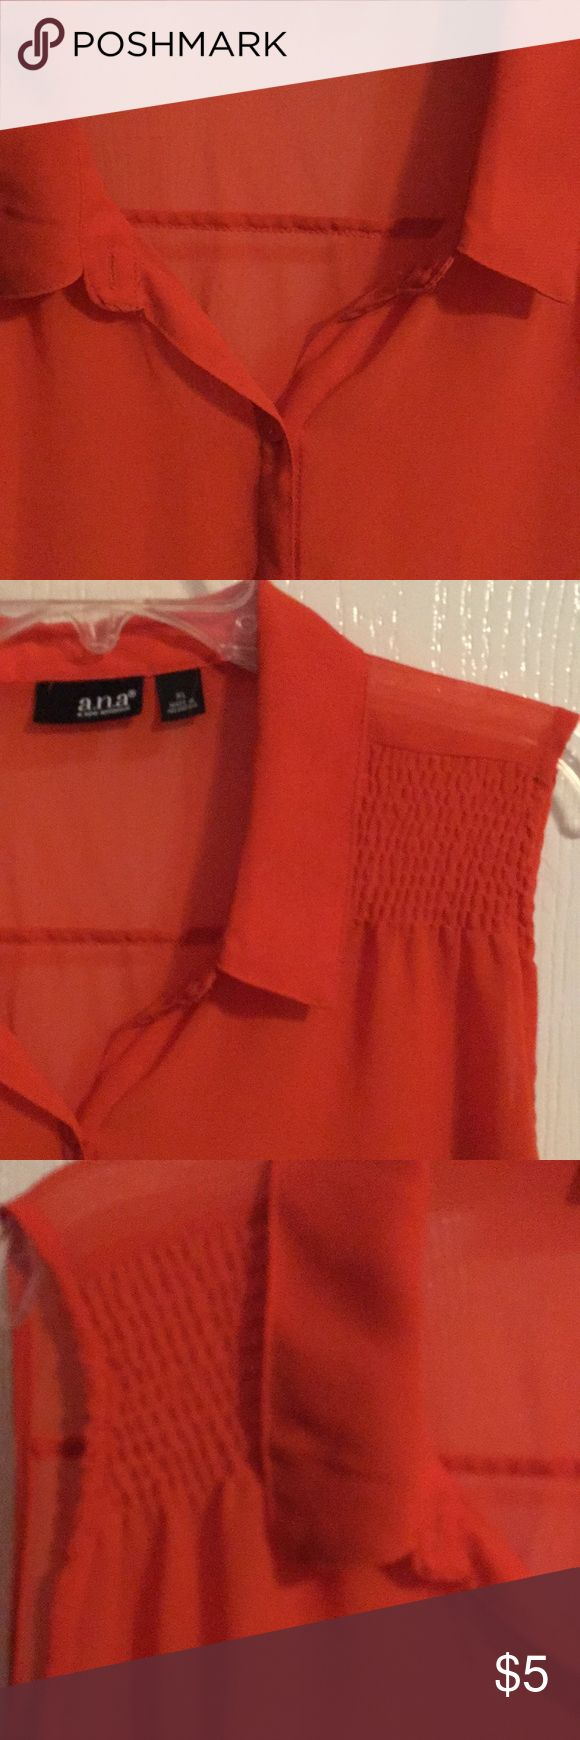 a.n.a. BUTTON UP TUNIC Orange button up sleeveless top. Back is longer than front. It is see thru. A cami or cute bra Leyte. Very nice condition. Size XL a.n.a Tops Tunics